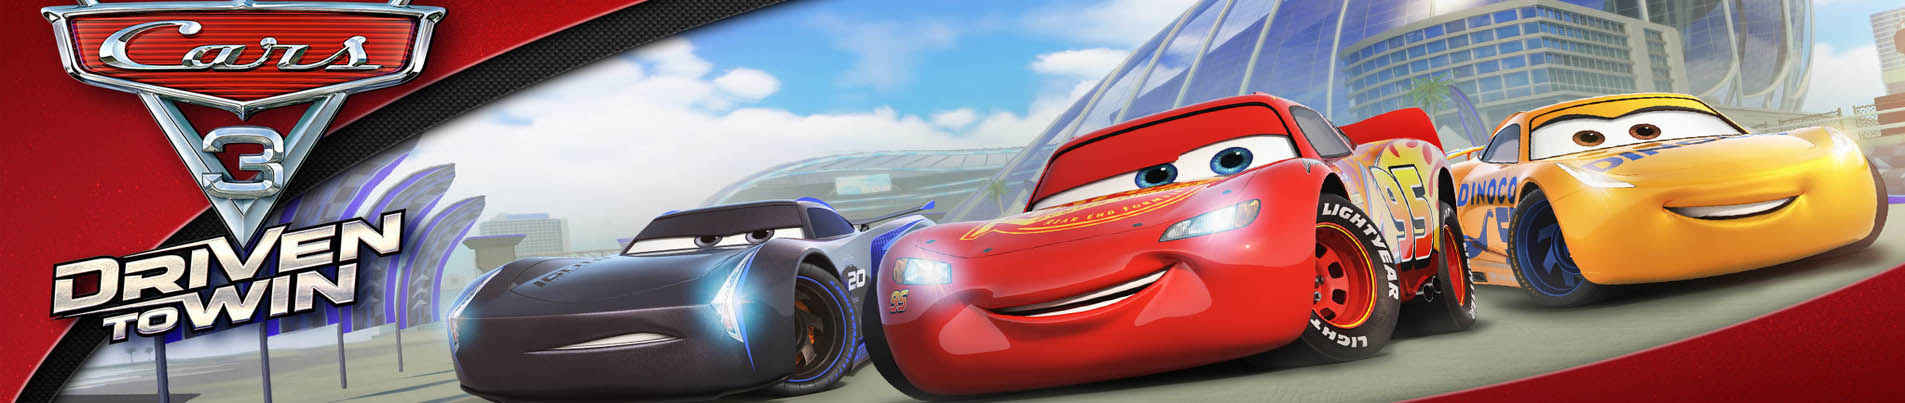 Disney Cars 3 merchandise wholesale supplier.